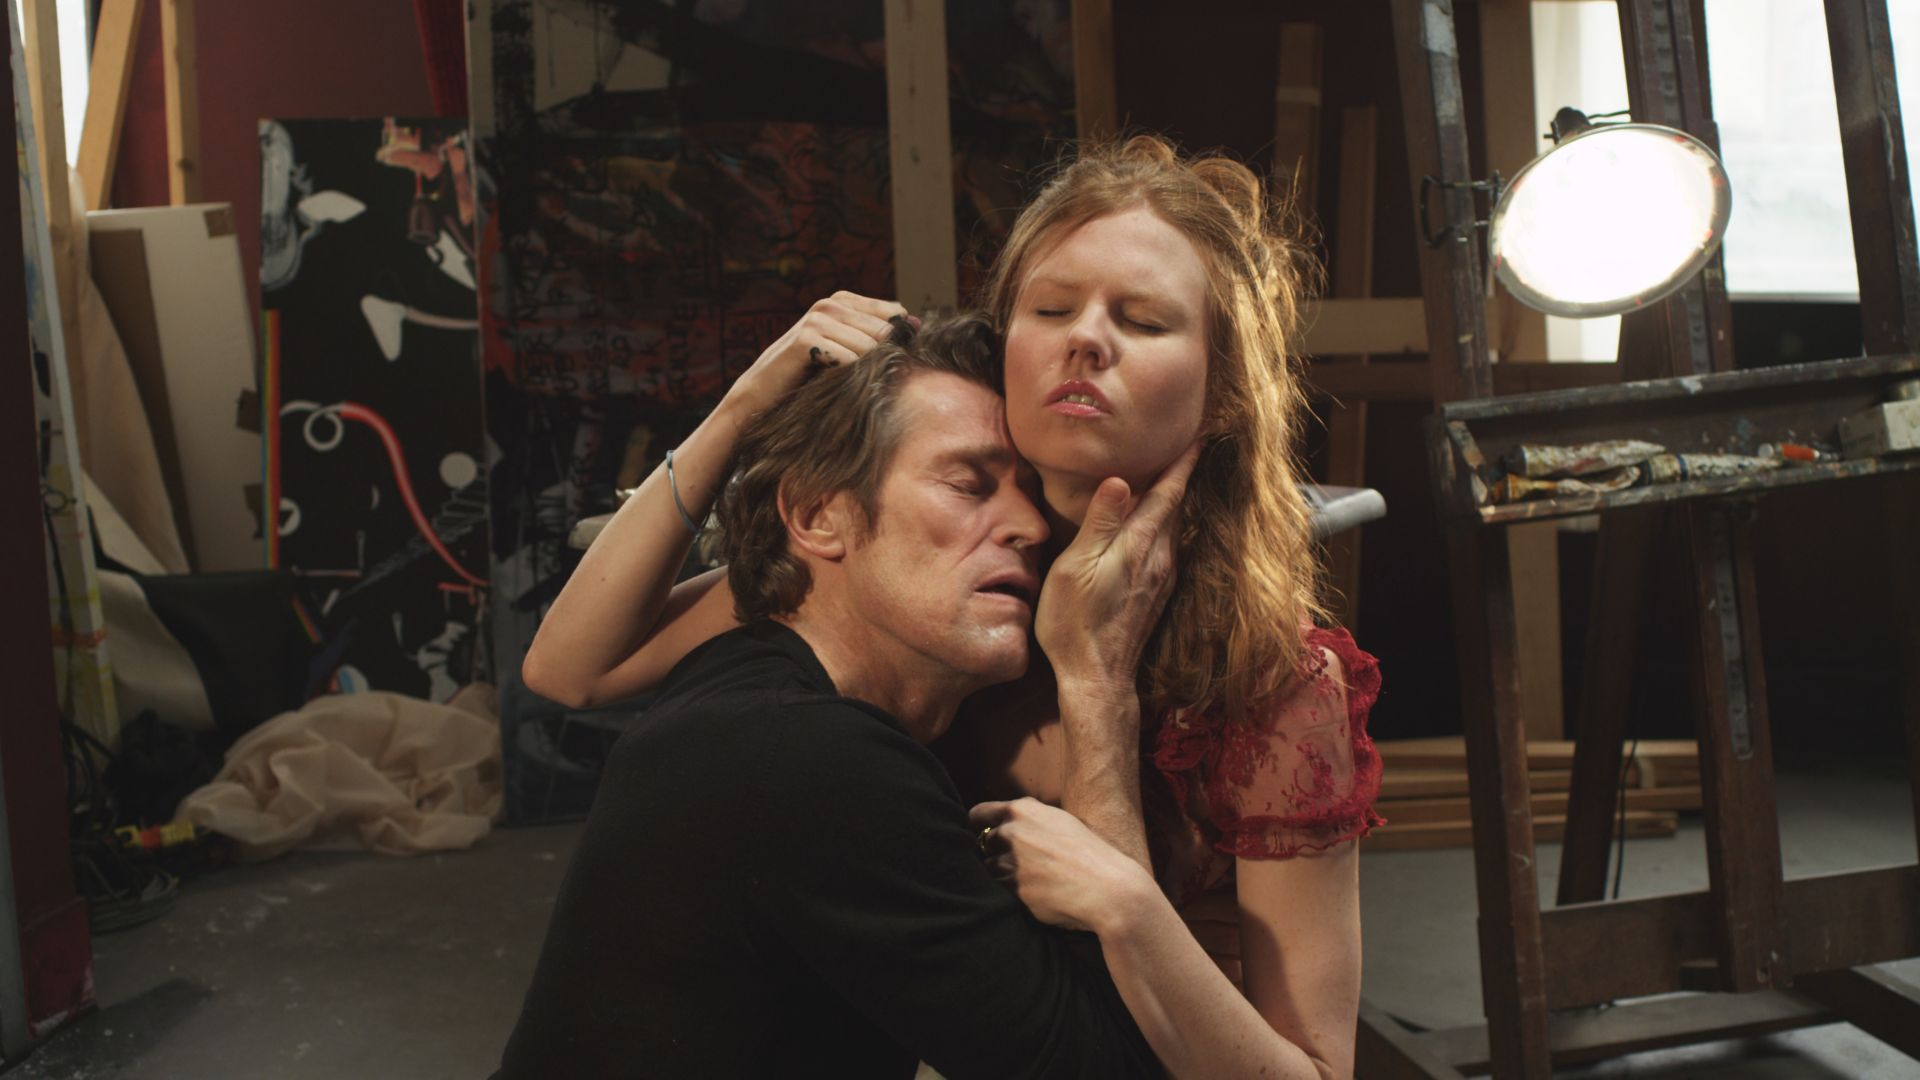 Willem Dafoe and Shanyn Leigh spend their last hours together in 4:44 Last Day on Earth (2011)